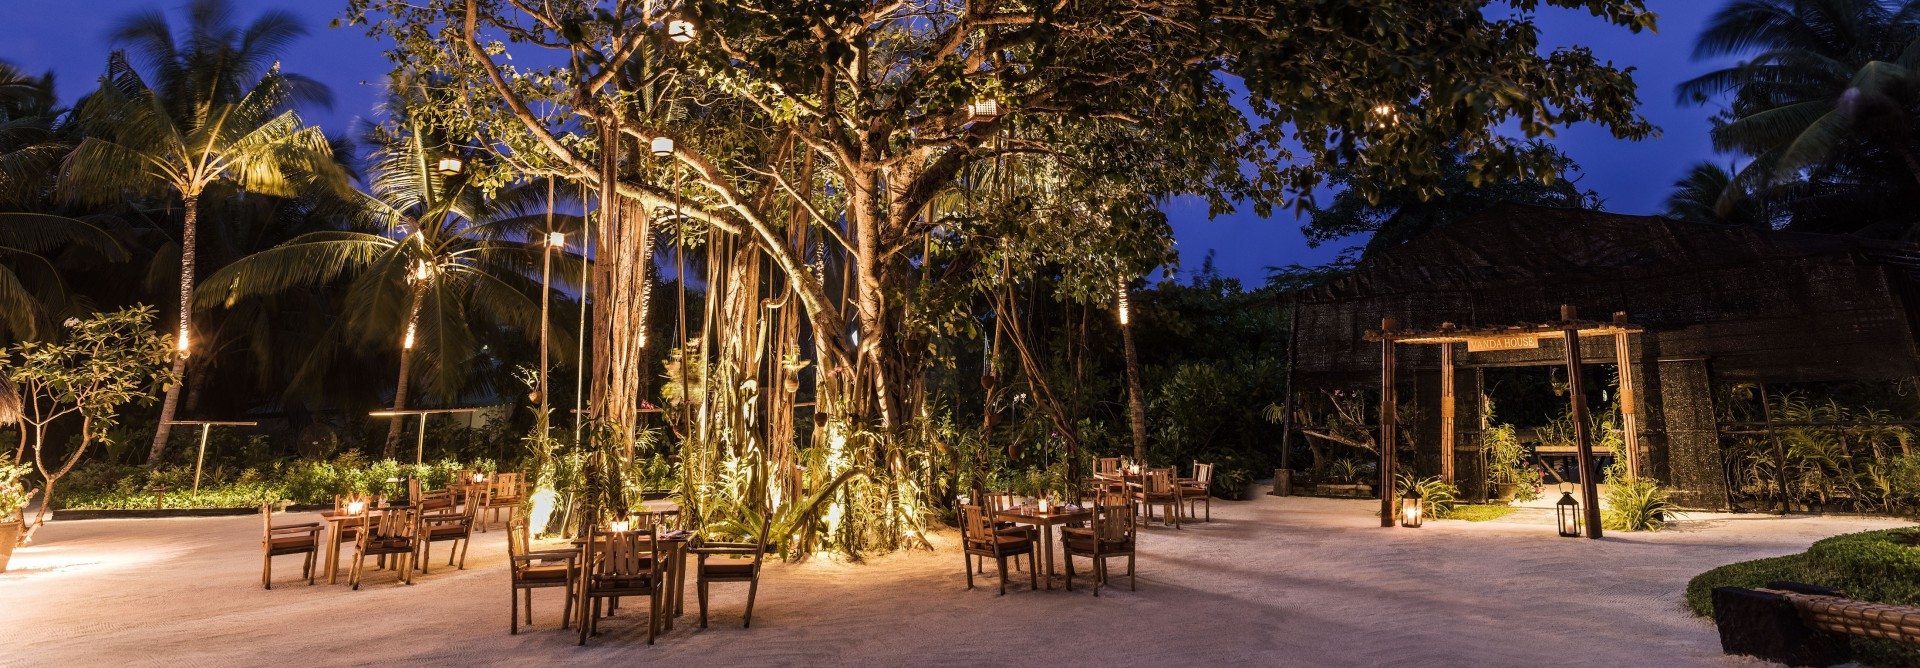 Botanica Banyan Tree Dining Area